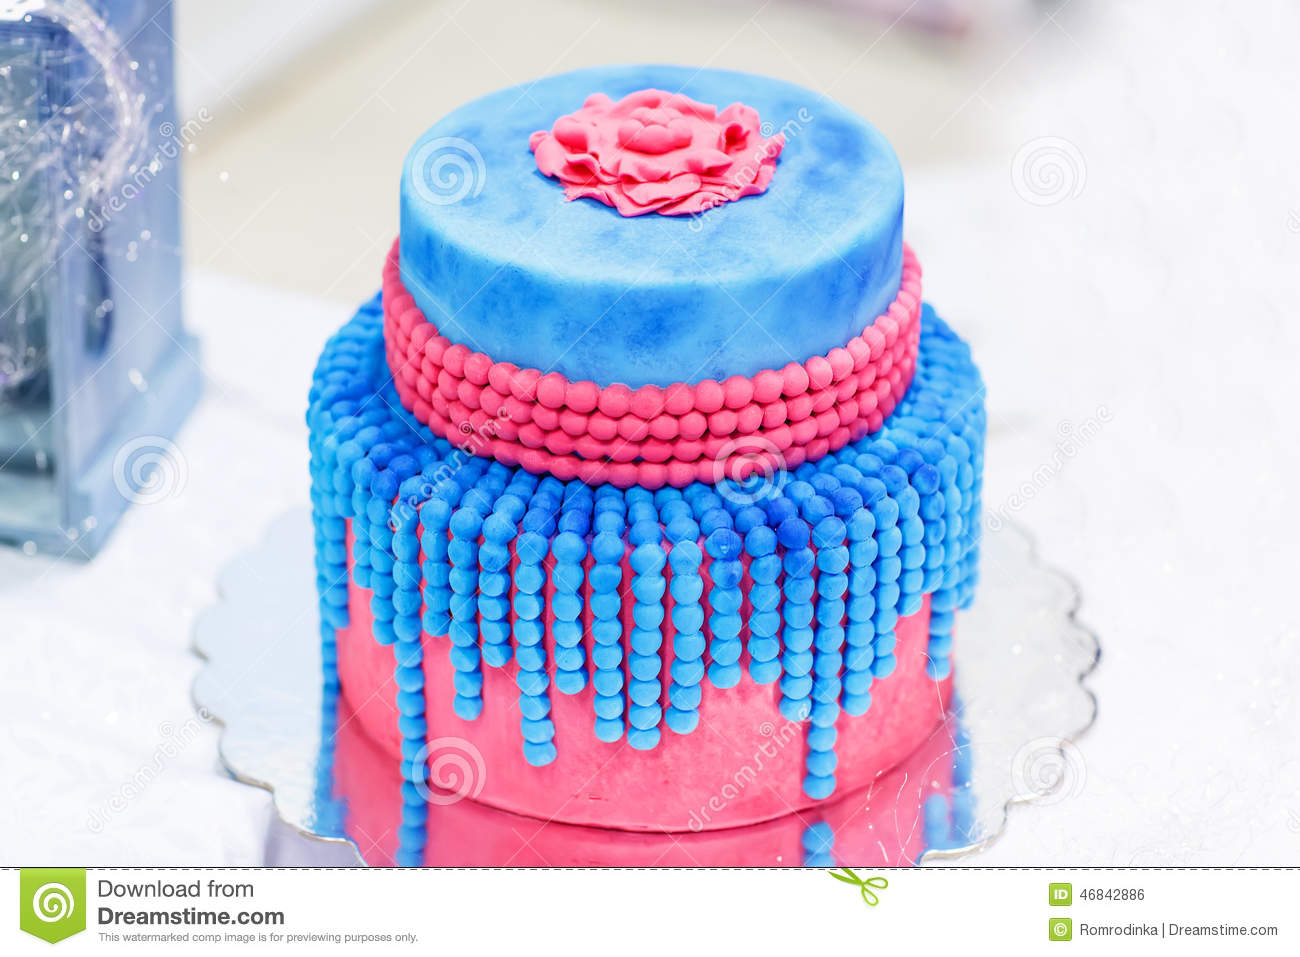 Wedding Cake In Blue And Red Or Pink With Elegant Pearls Stock